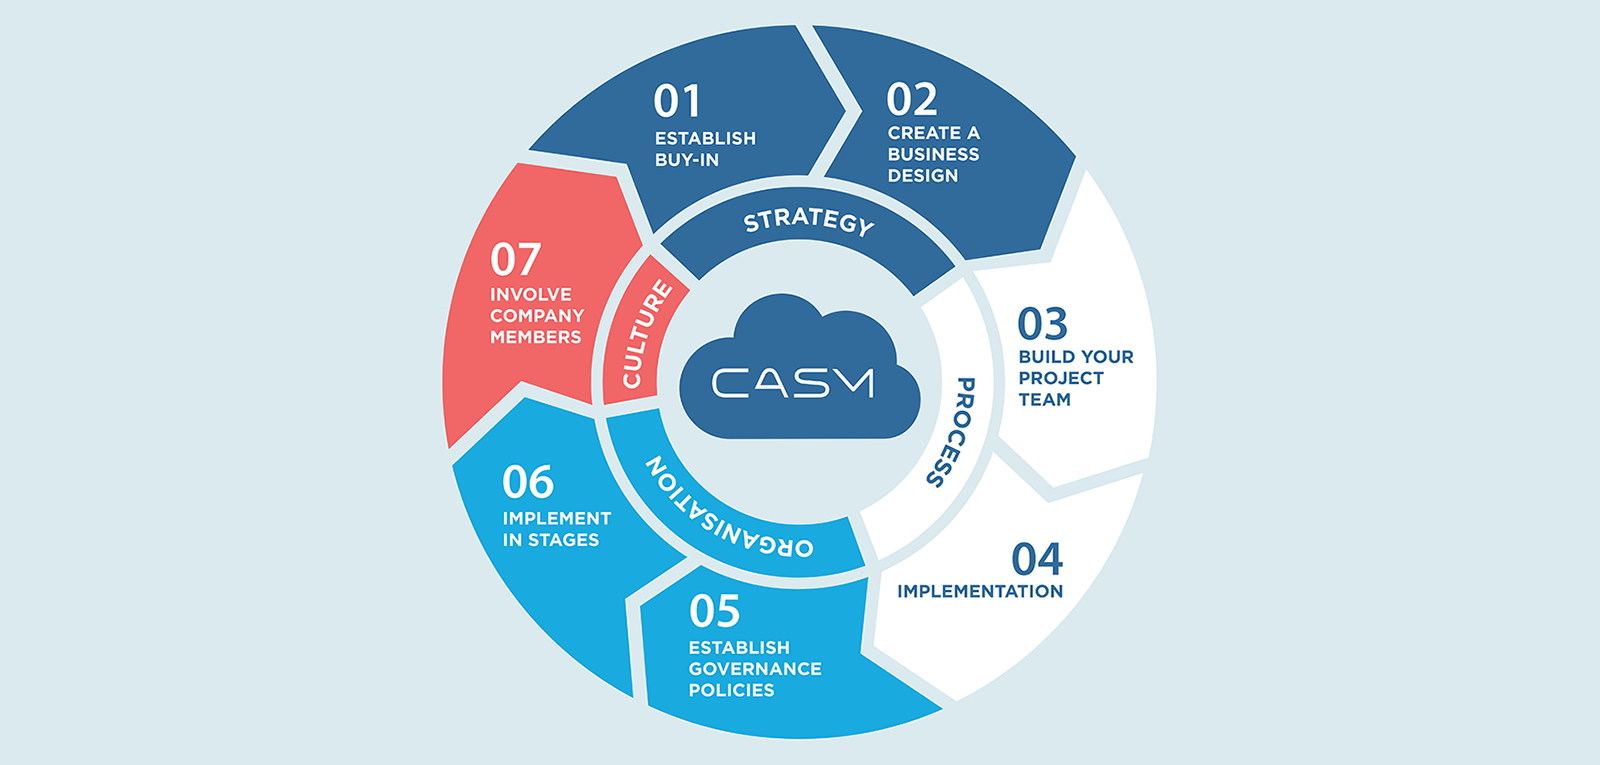 Seven steps to successfully implement CASM